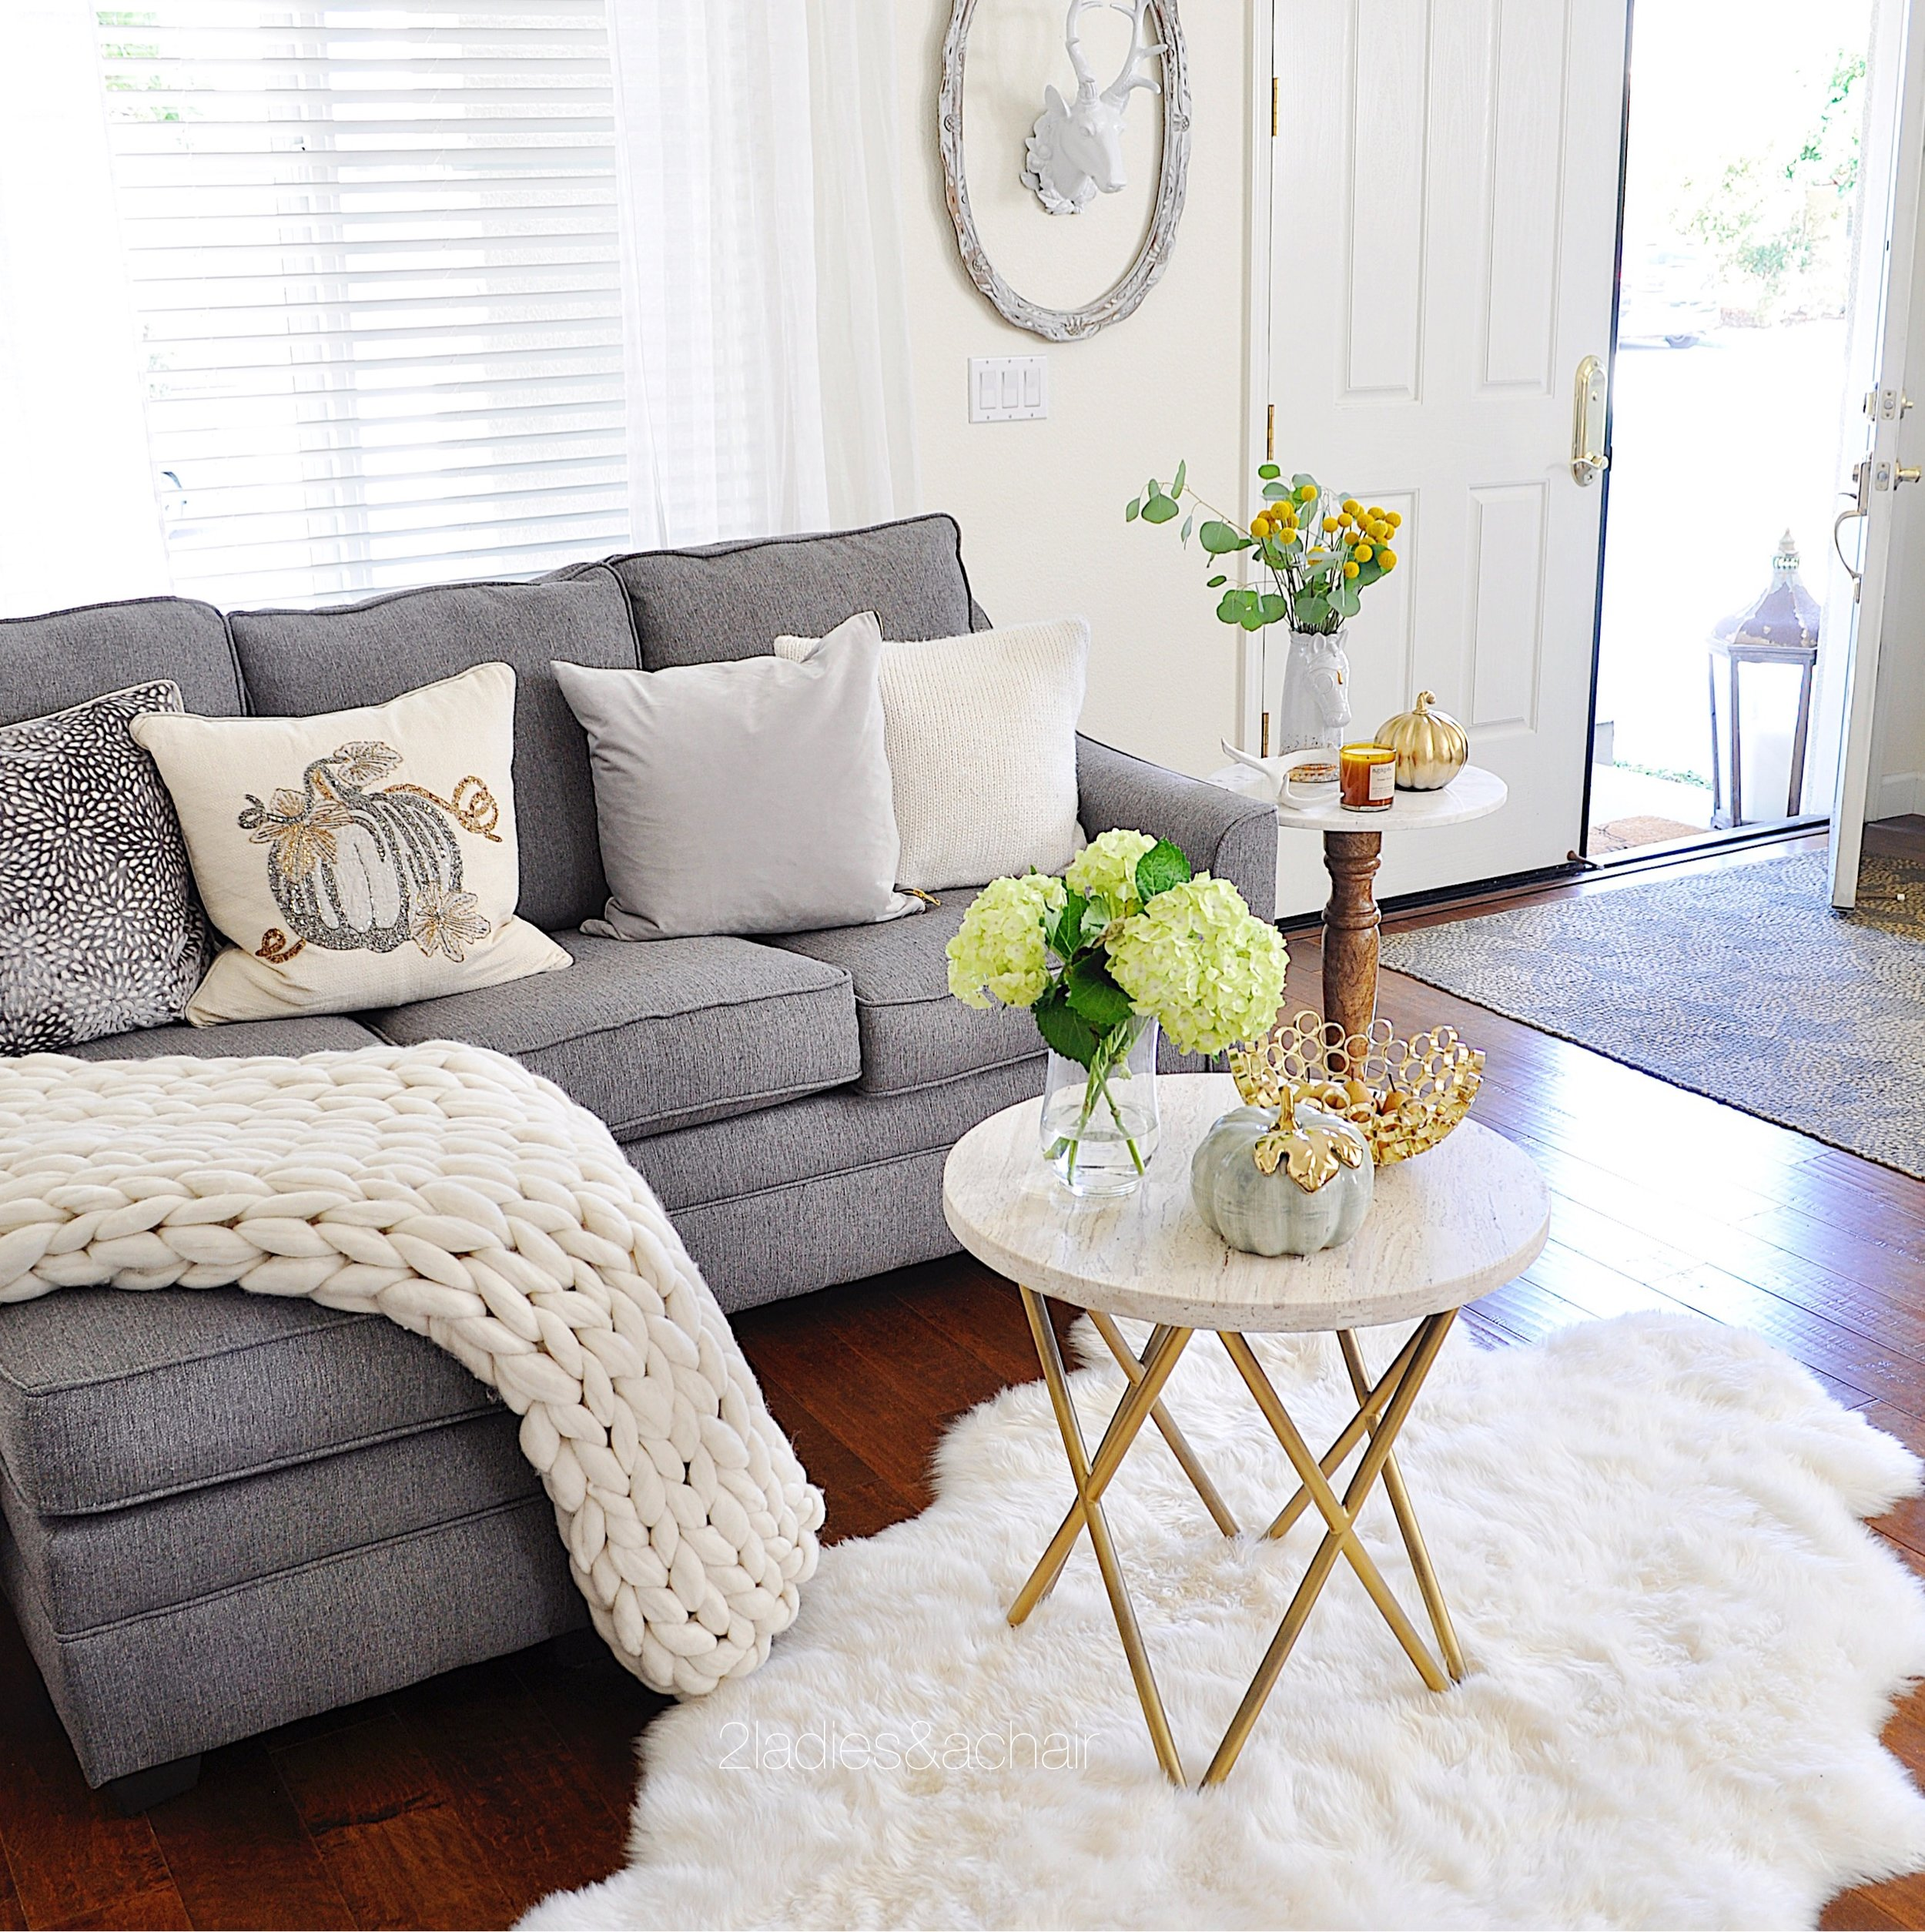 neutral living room ideas for fall IMG_8073.JPG